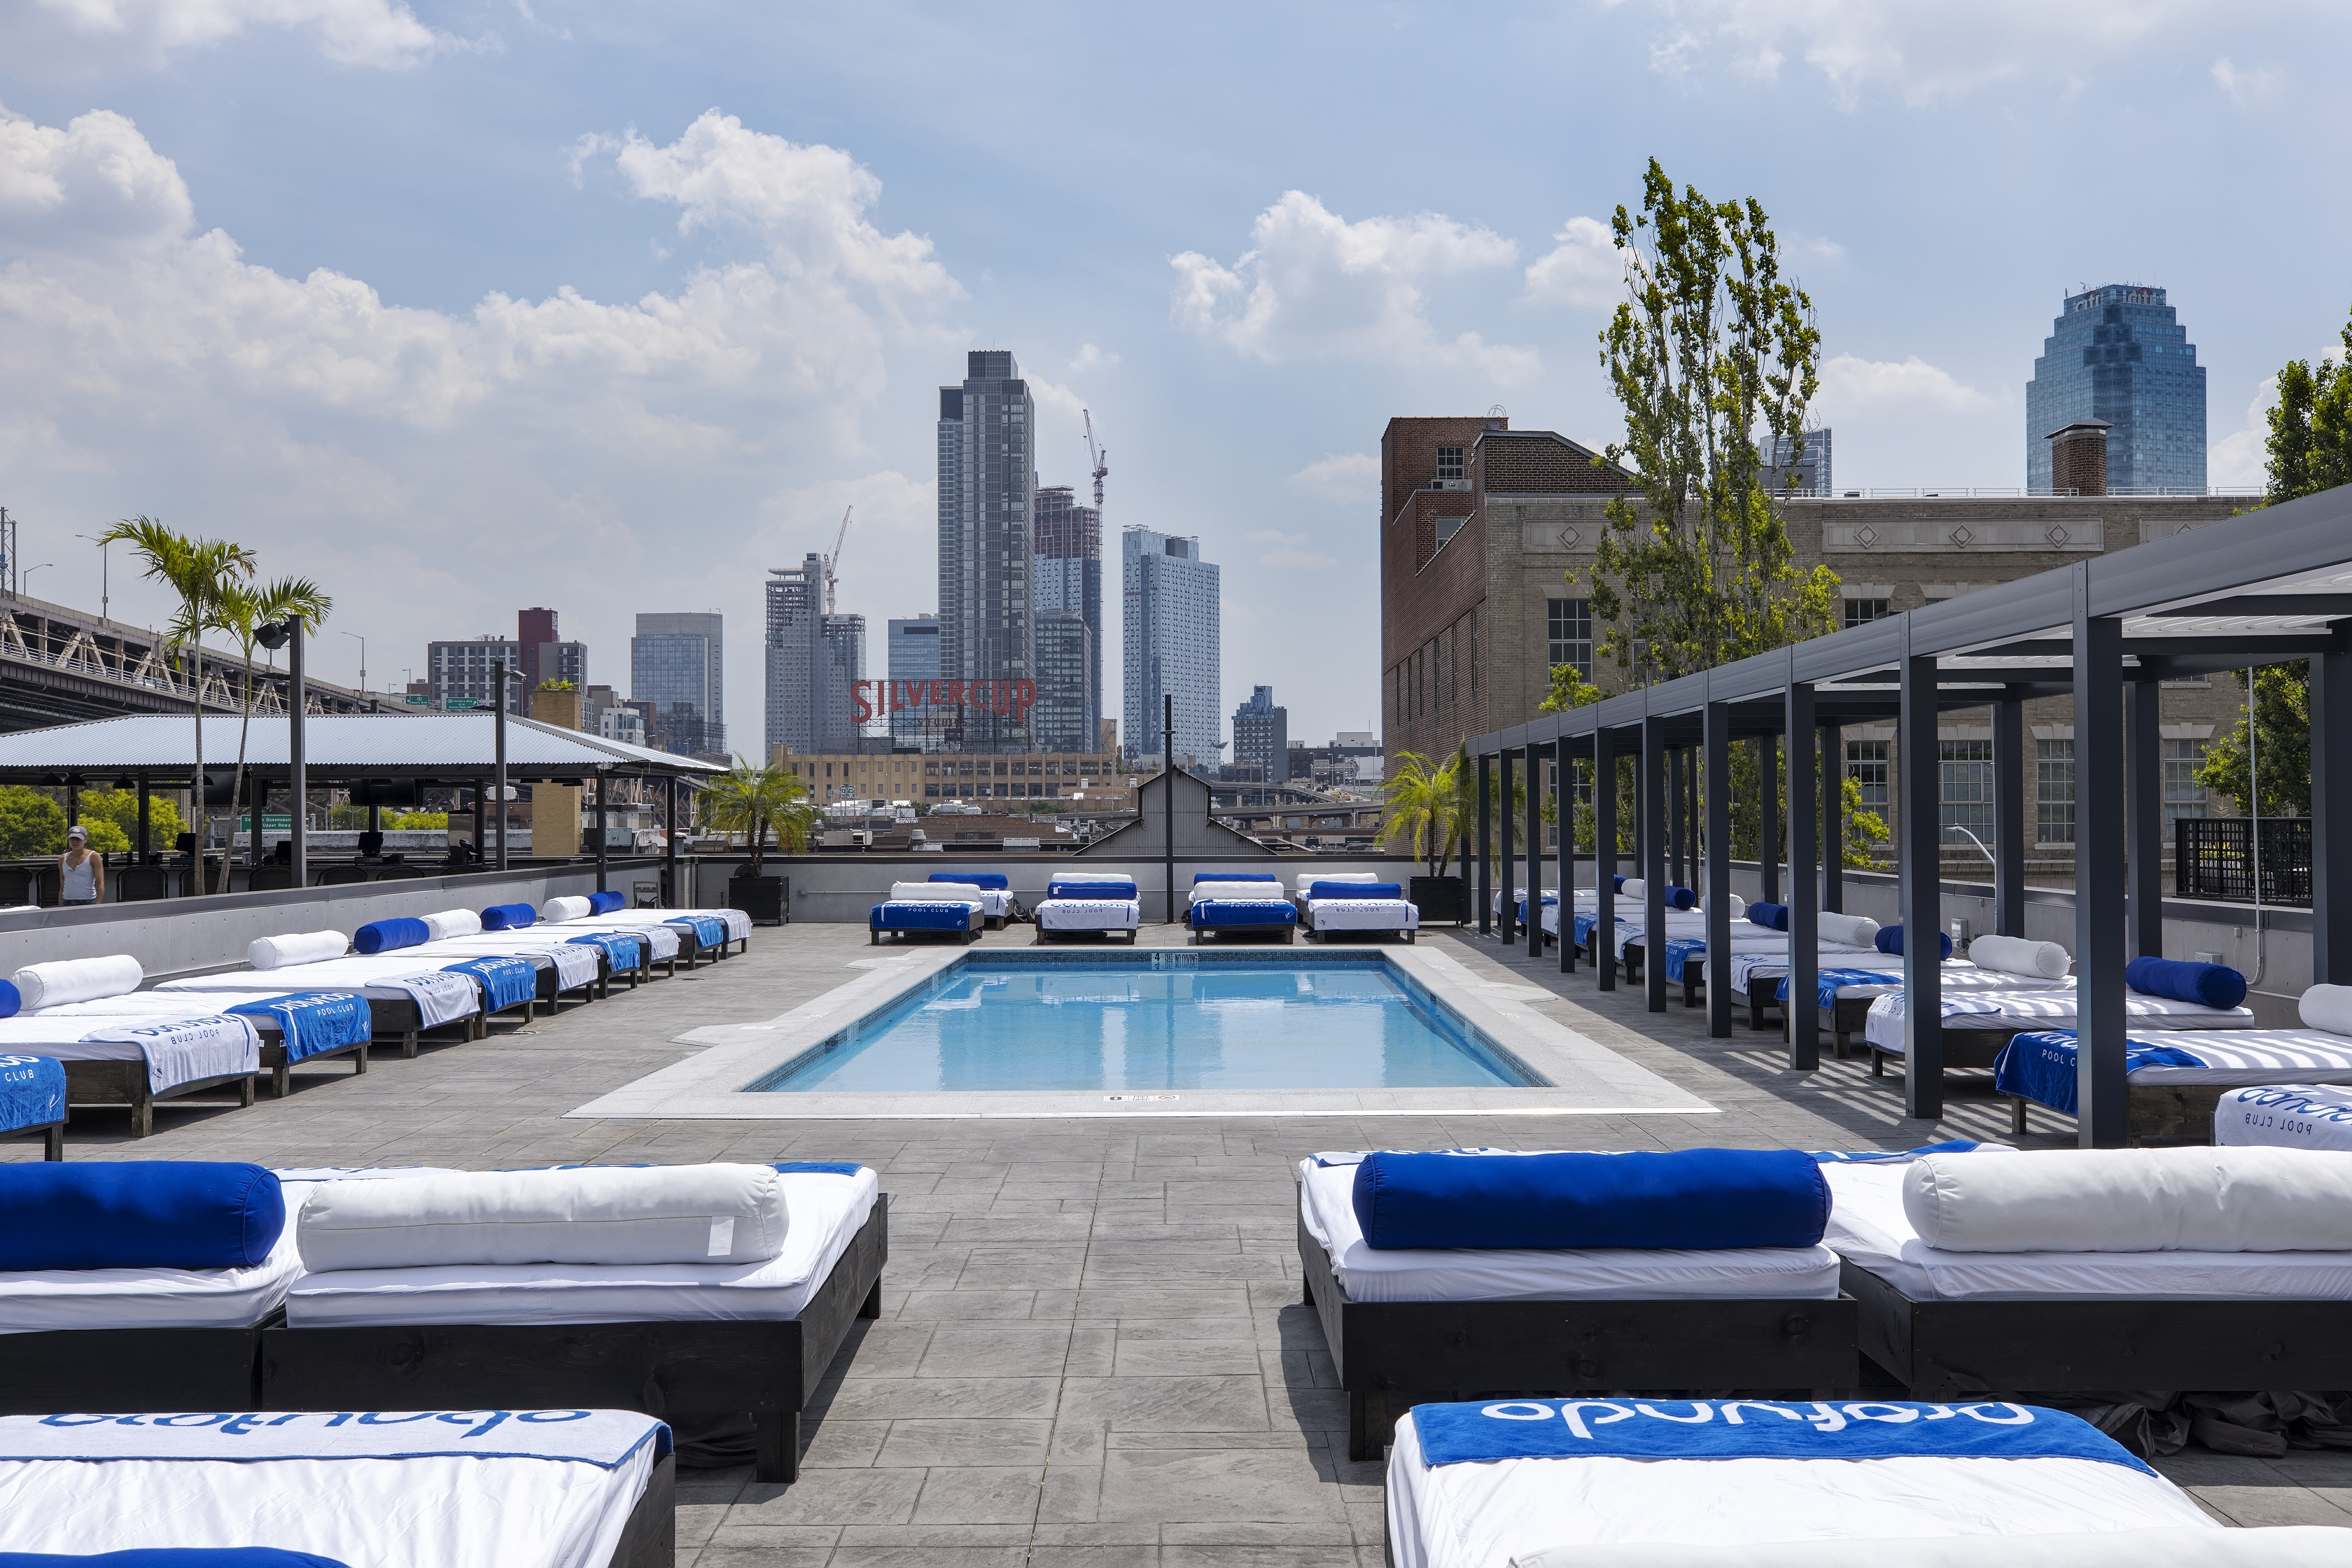 50 a day rooftop pool opens at long island city hotel - New york hotels with rooftop swimming pools ...